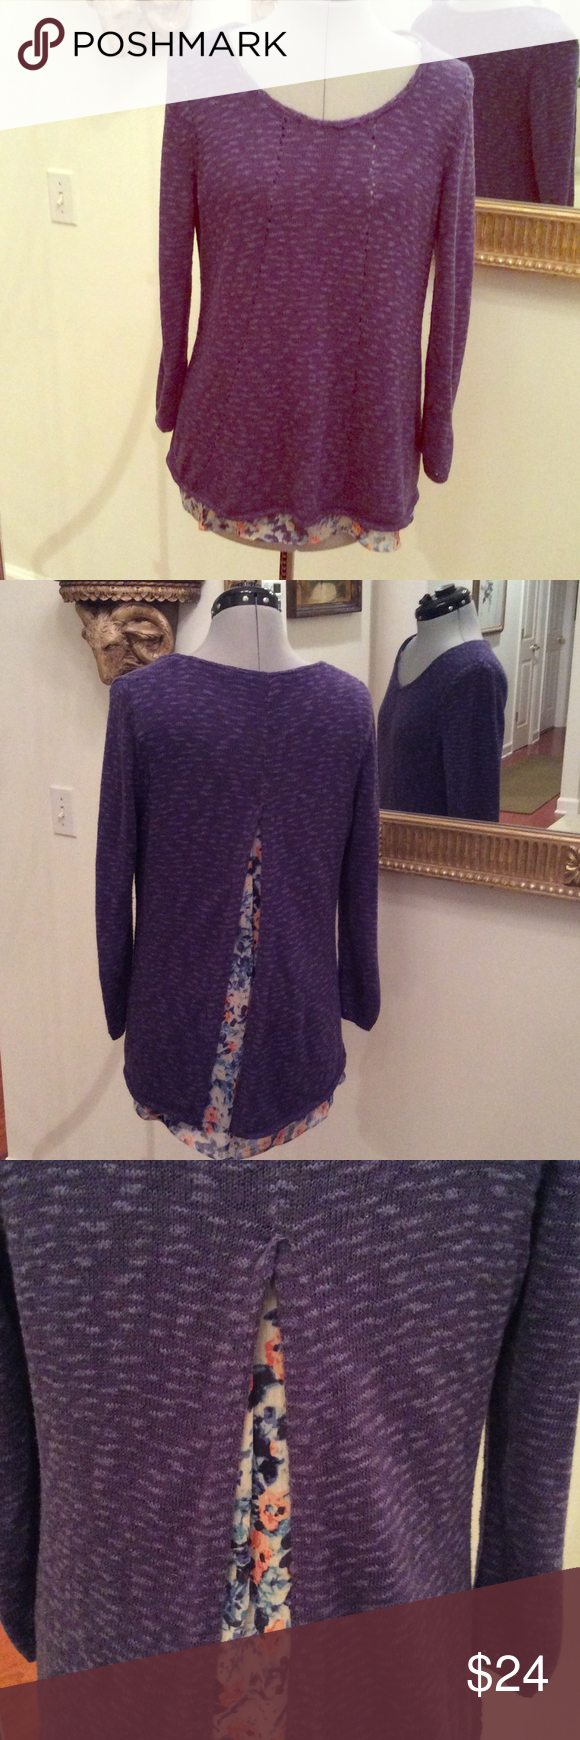 Lucky again 🍀 Lucky Brand sweater , purple with built in blouse, size M, 3/4 length sleeves Lucky Brand Sweaters Crew & Scoop Necks